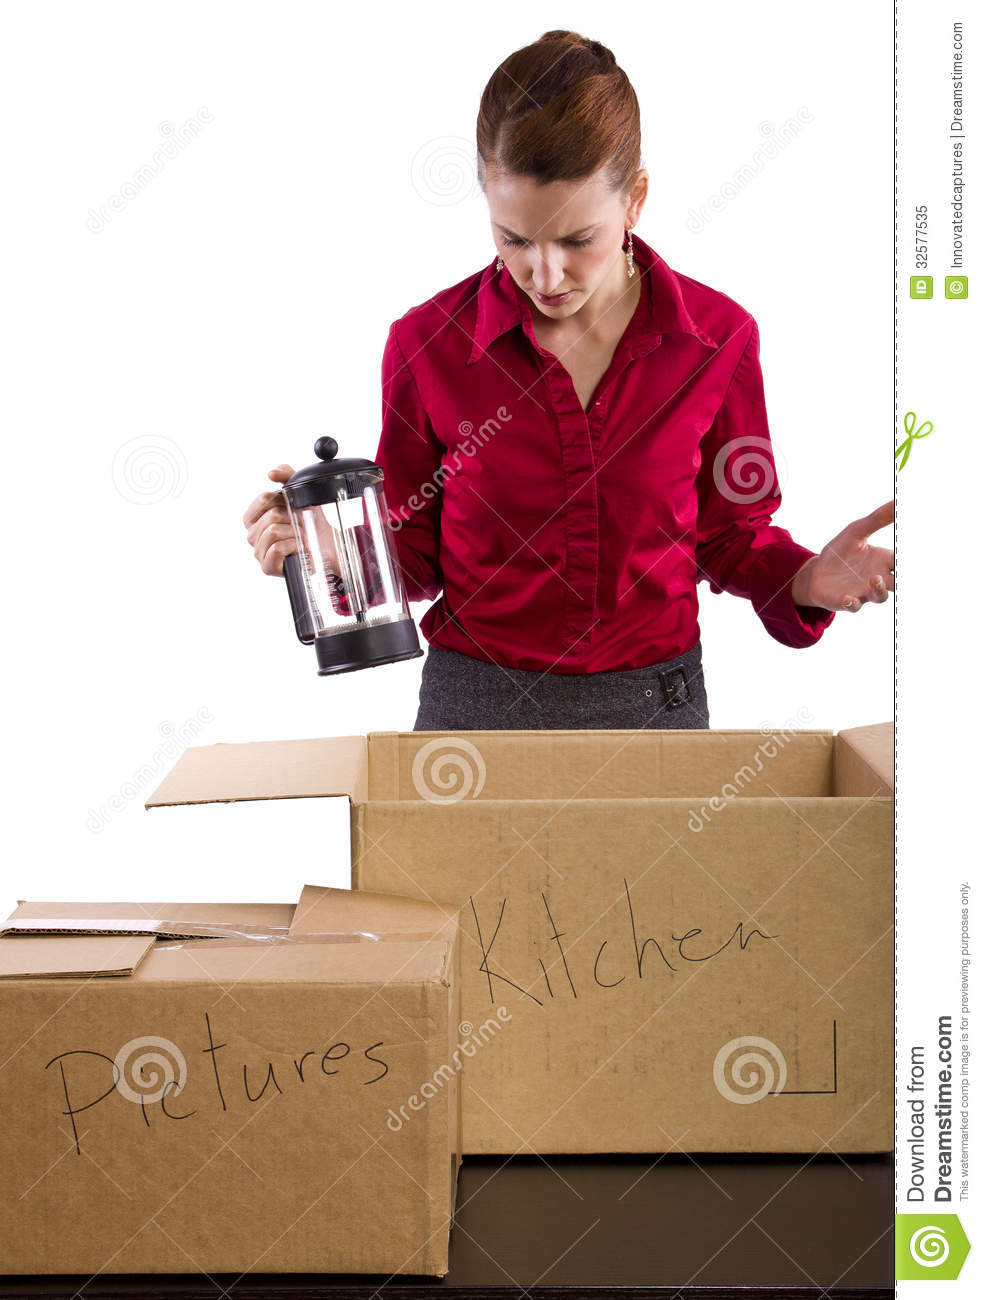 Lost Items Royalty Free Stock Photo Image 32577535